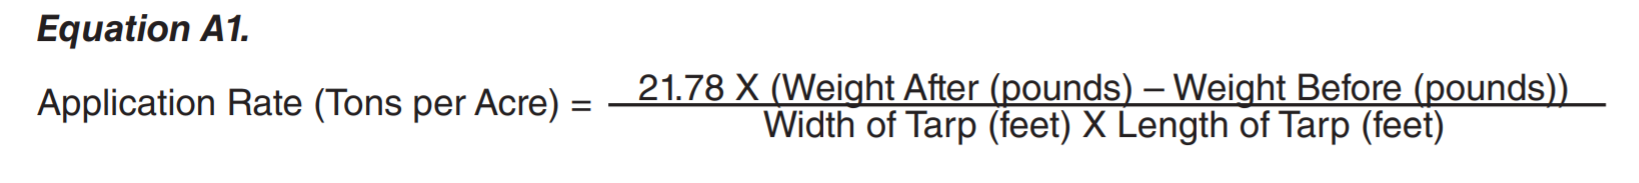 Equation A1:  Application Rate (tones per Acre) =  ( 21.78 X ( weight after (pounds) - Weight Befor (pounds) )  ) /   ( Width of Tarp (teet) X Length of Tarp (feet ) ).